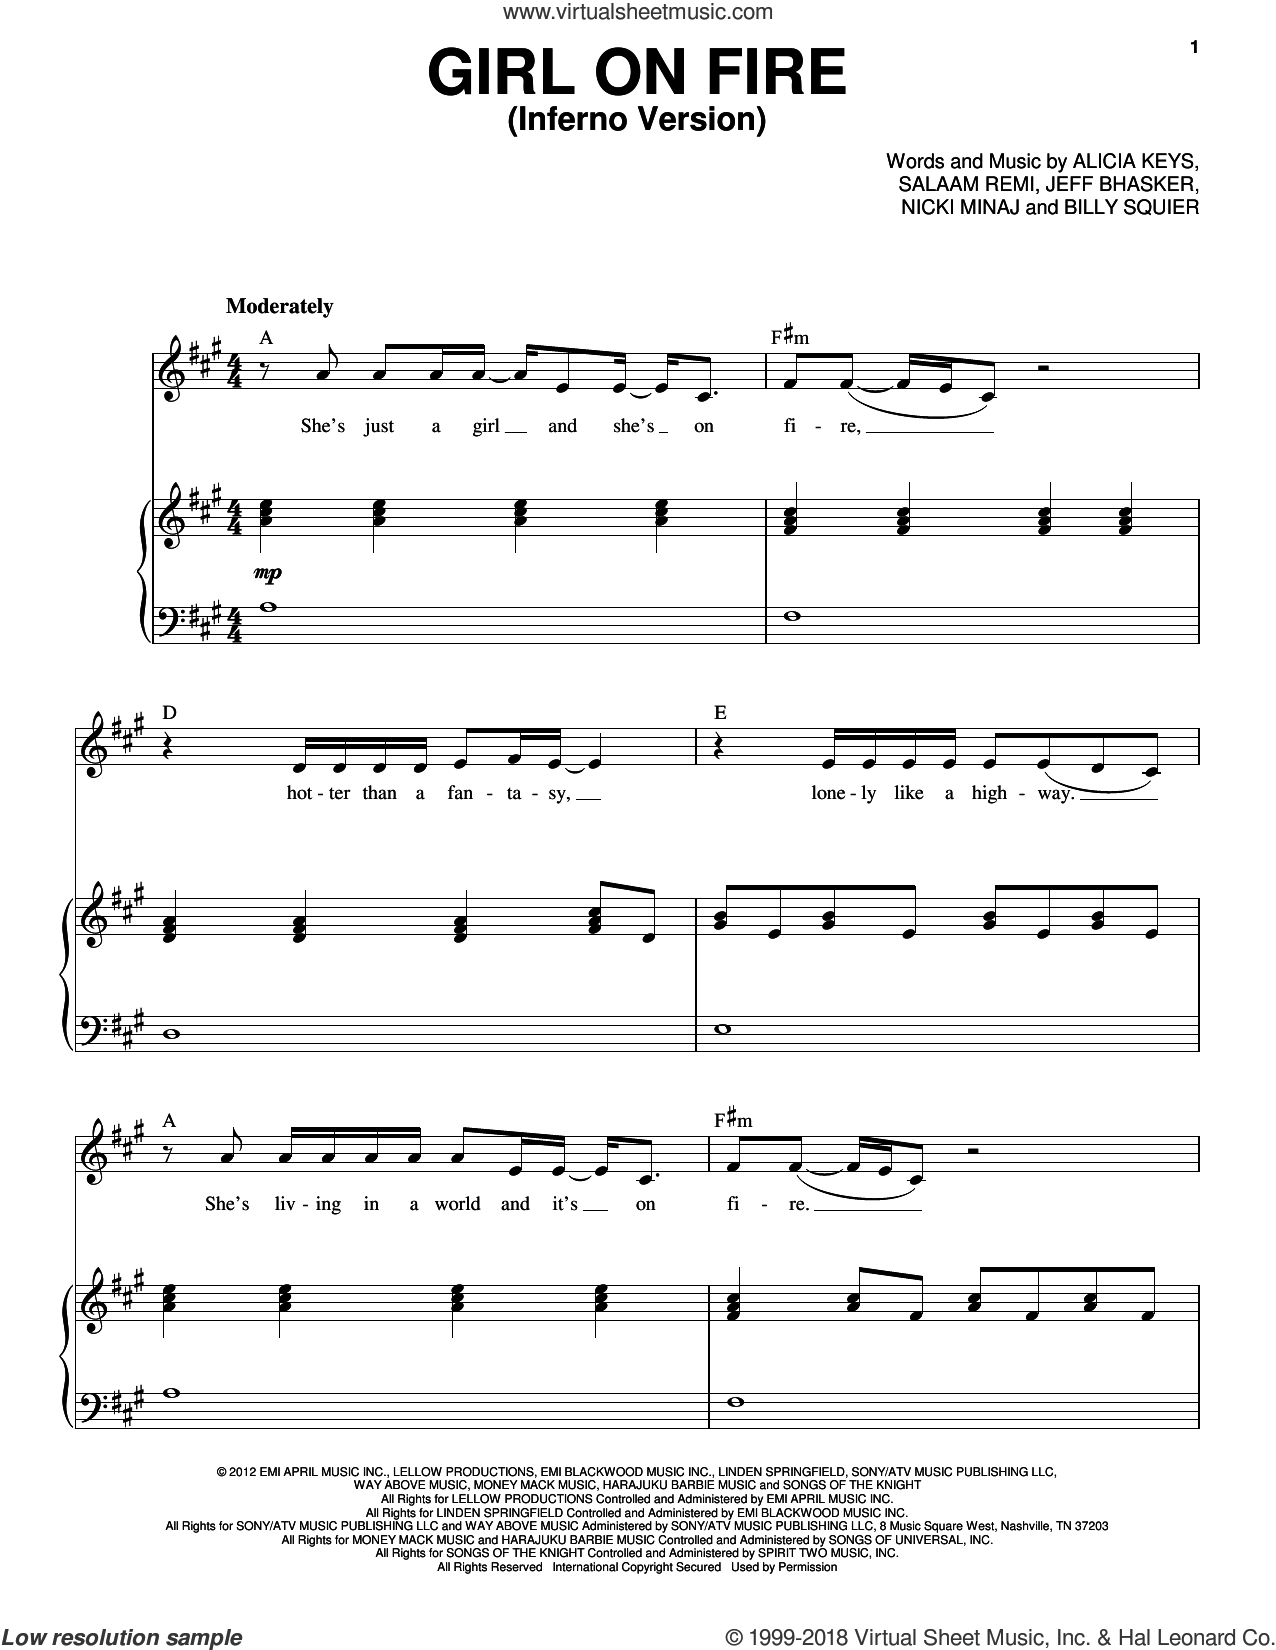 Girl On Fire (Inferno Version) sheet music for voice and piano by Salaam Remi